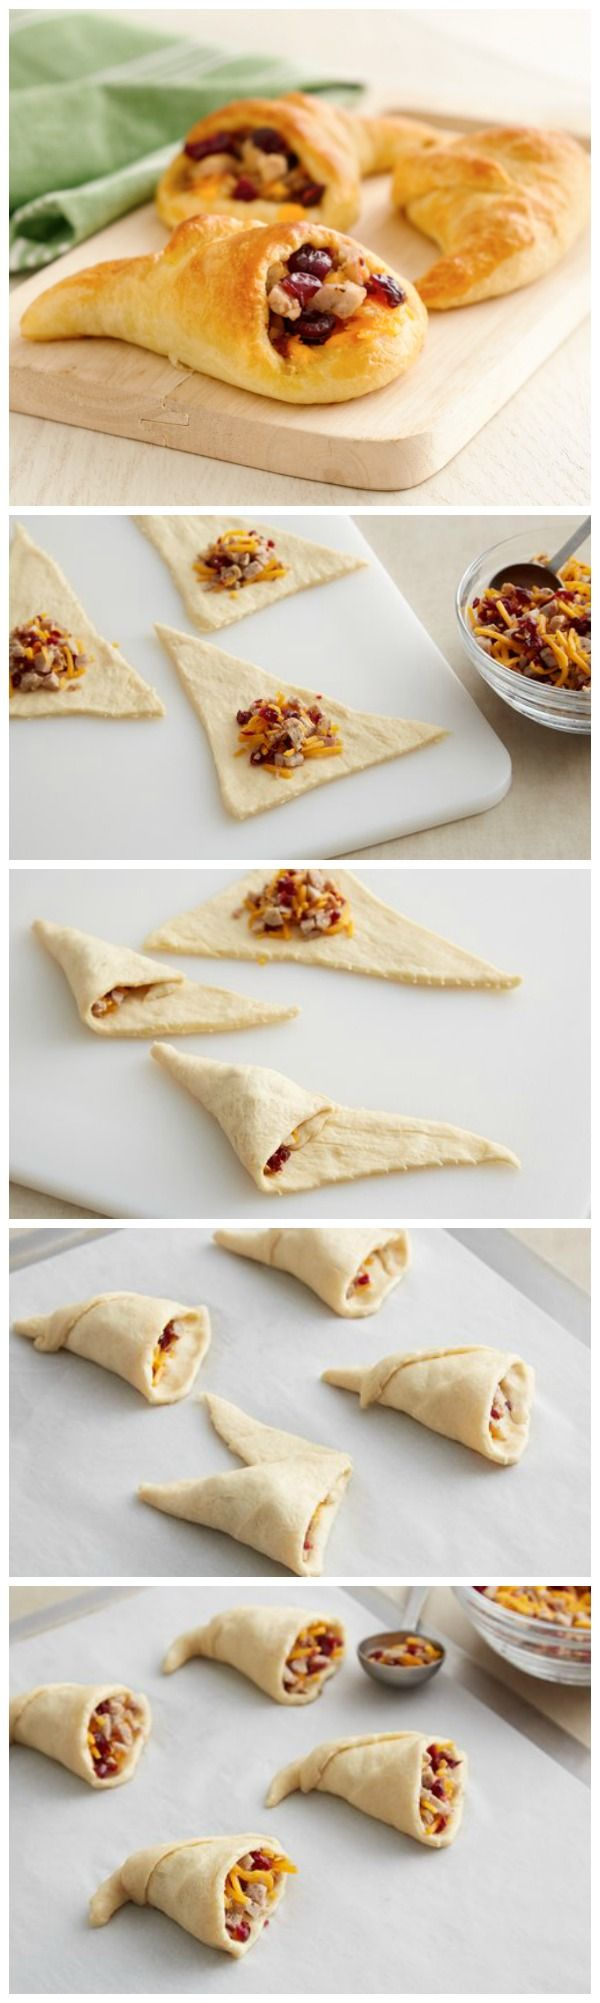 Pillsbury Crescent Cornucopias stuffed with sausage: your new turkey sidekick for Thanksgiving!